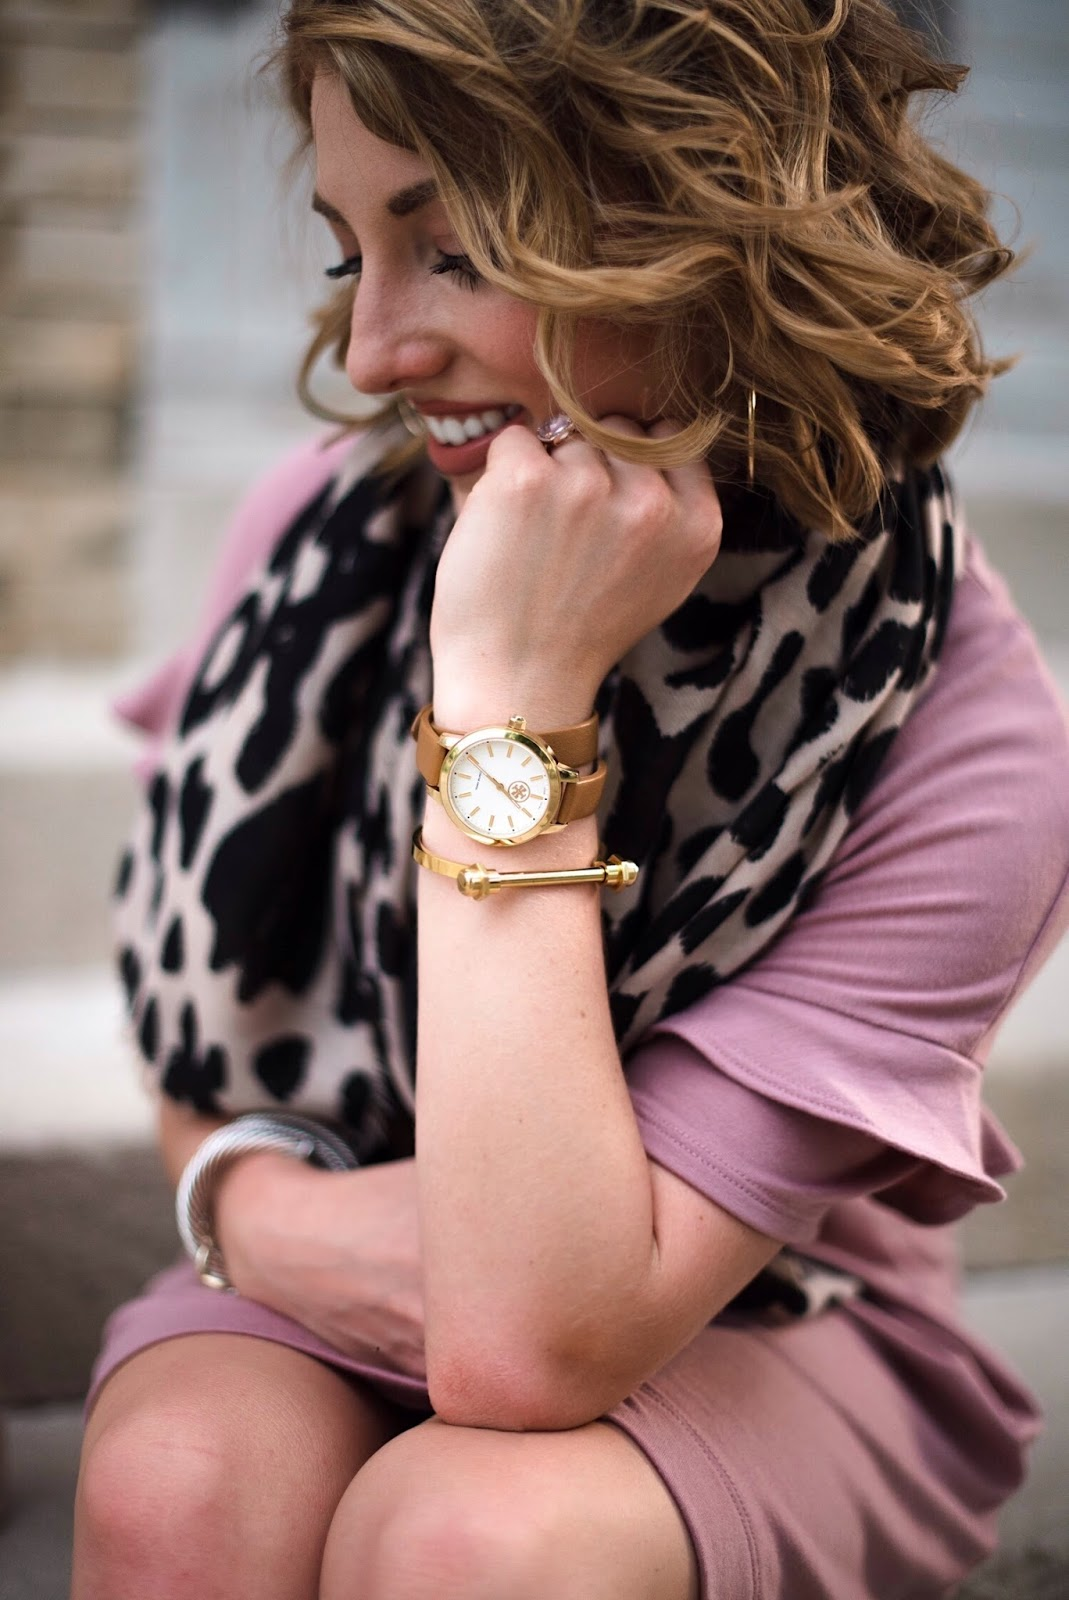 Tory Burch Wrap Watch - Click through to find all the details on Something Delightful Blog!